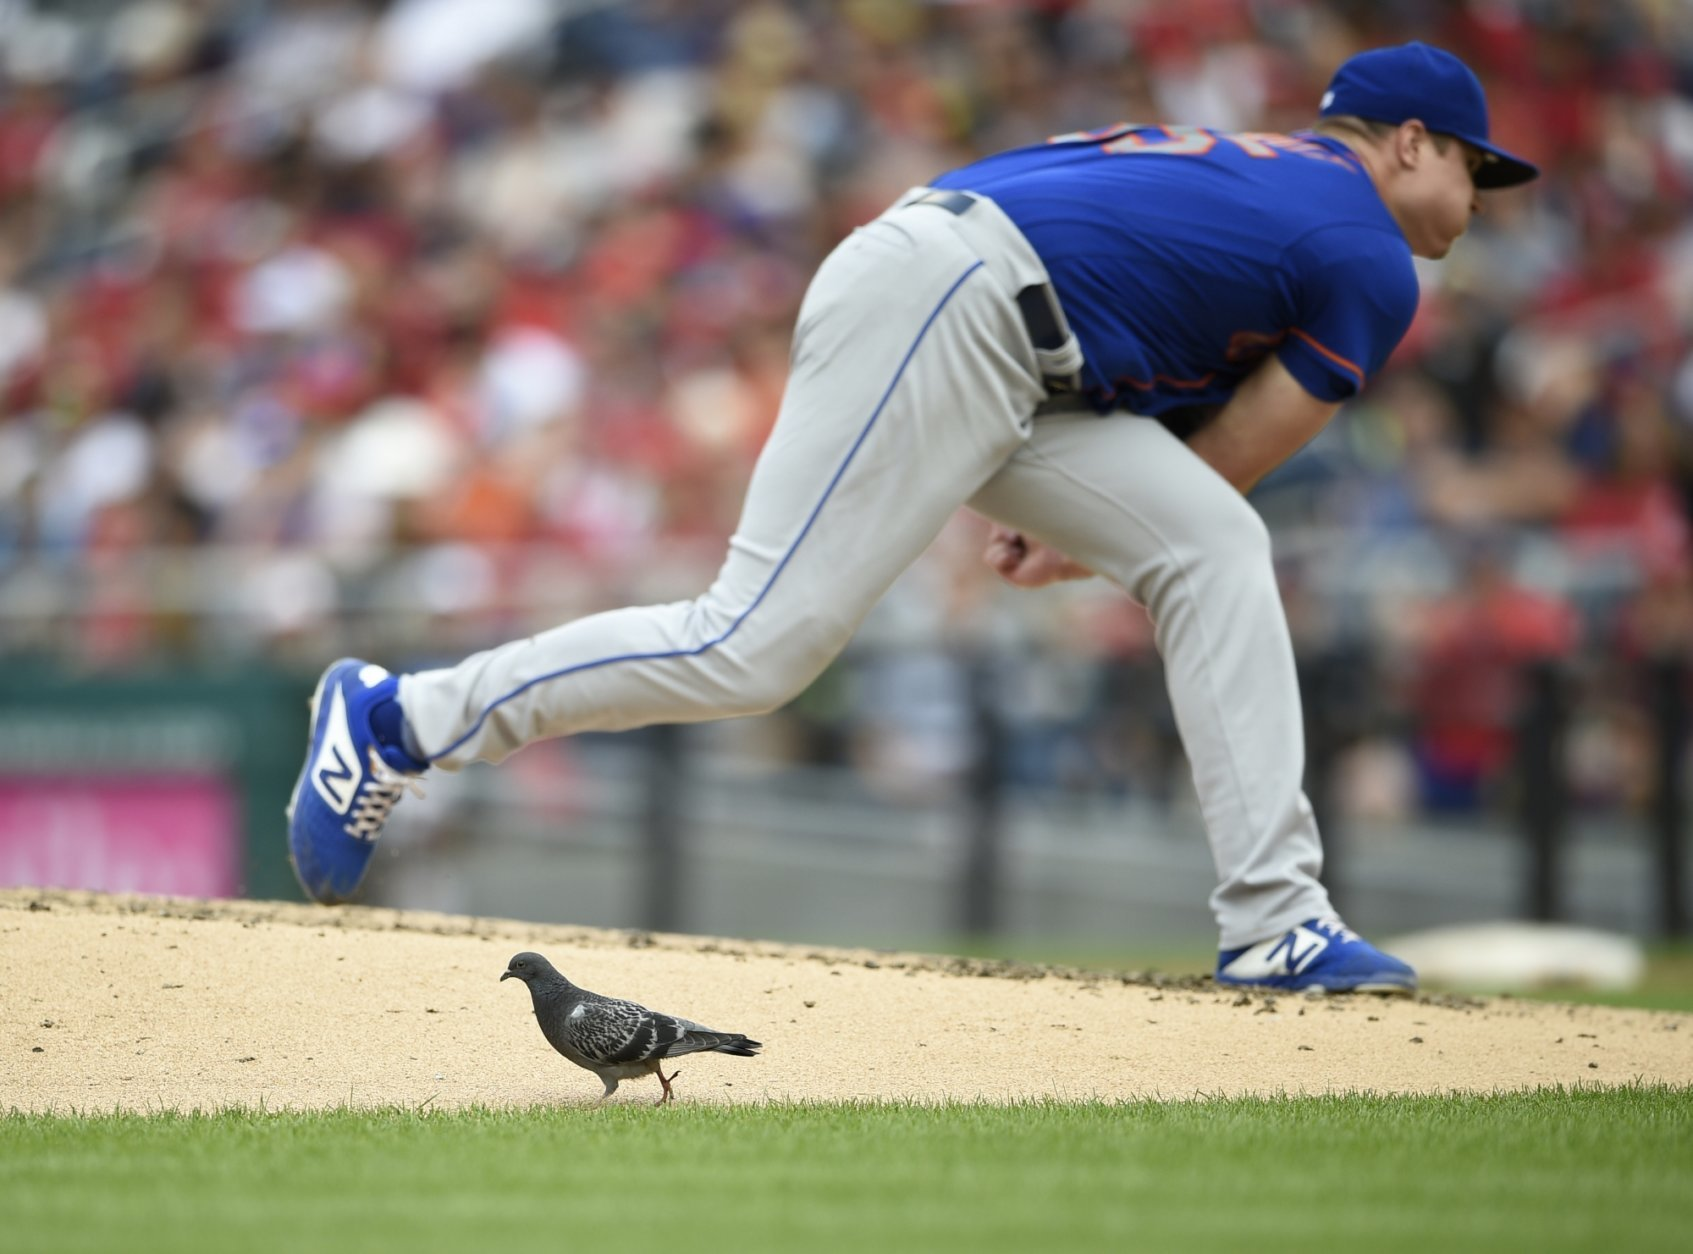 A bird stands by the mound as New York Mets starting pitcher Corey Oswalt follows through on a pitch during the third inning of a baseball game against the Washington Nationals, Saturday, Sept. 22, 2018, in Washington. (AP Photo/Nick Wass)